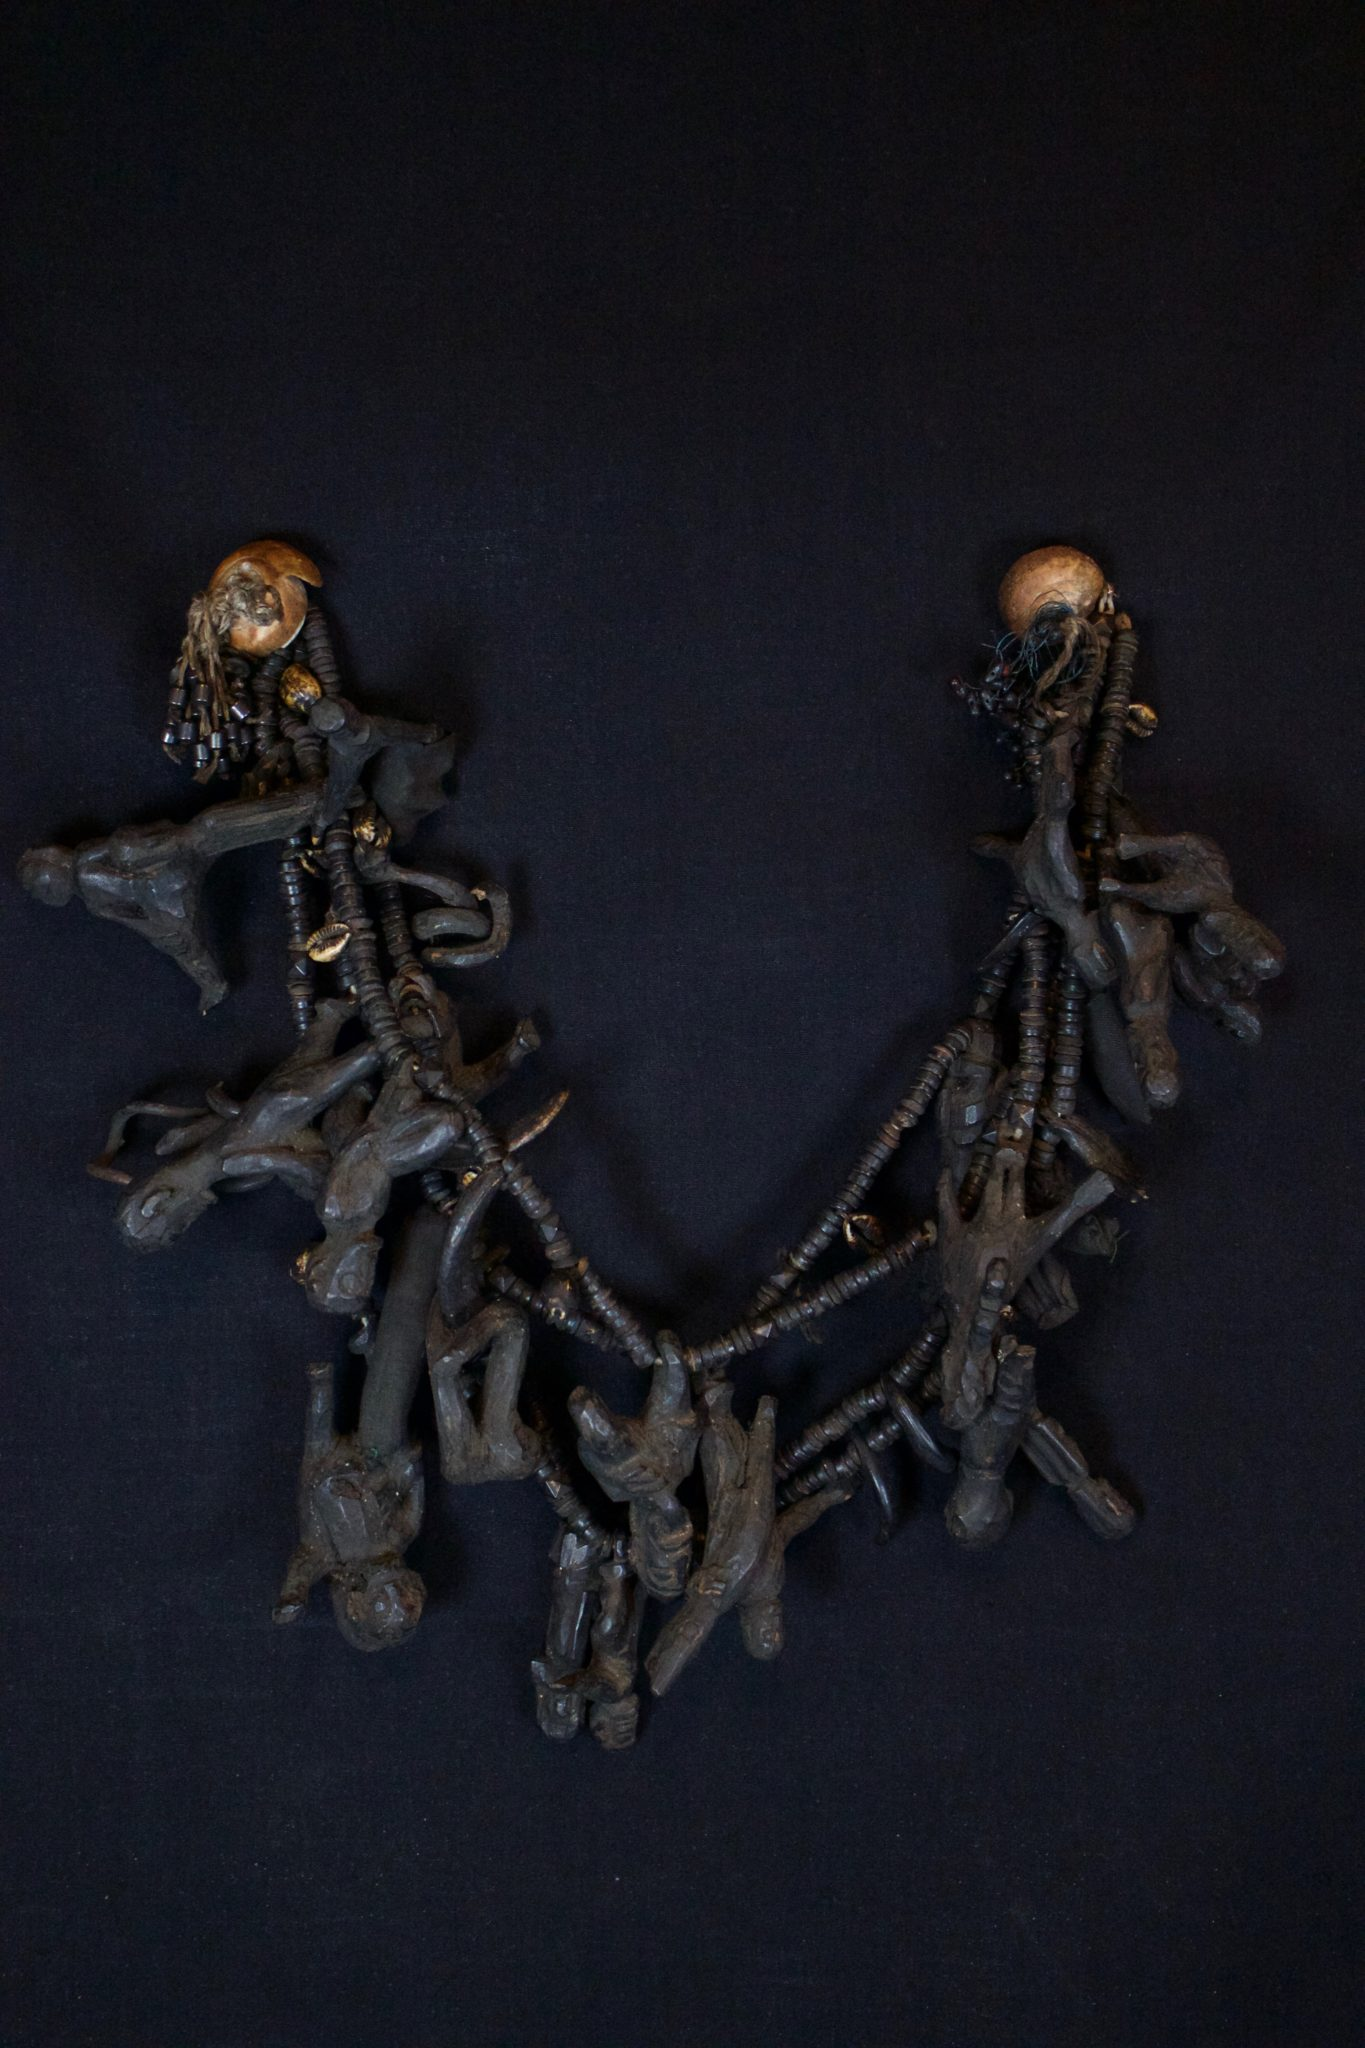 """Shaman Healing Amulet, Necklace, Borneo, Indonesia, Dayak tribe, Mid 19th to early 20th c, Root wood pigmented with soot, shell, animal teeth, cloth pouches, glass beads, disk beads, patinated with age and use. Used for healing rituals. The amulets correspond to various illnesses and conditions. 26"""" x 8"""" x 2 ½"""", $2400."""